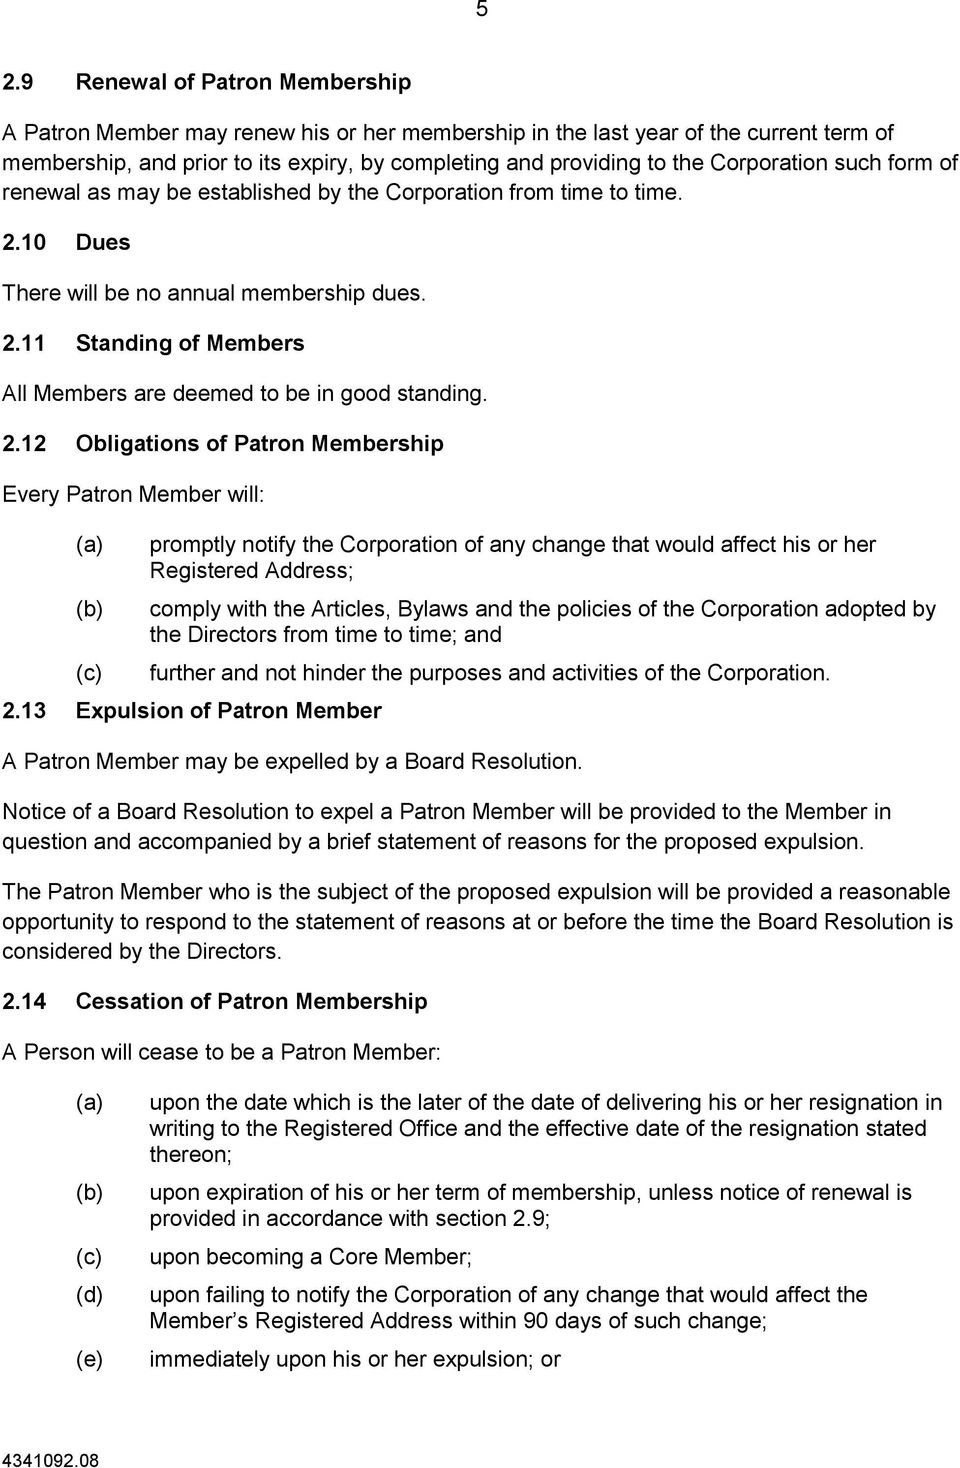 2.12 Obligations of Patron Membership Every Patron Member will: (c) promptly notify the Corporation of any change that would affect his or her Registered Address; comply with the Articles, Bylaws and